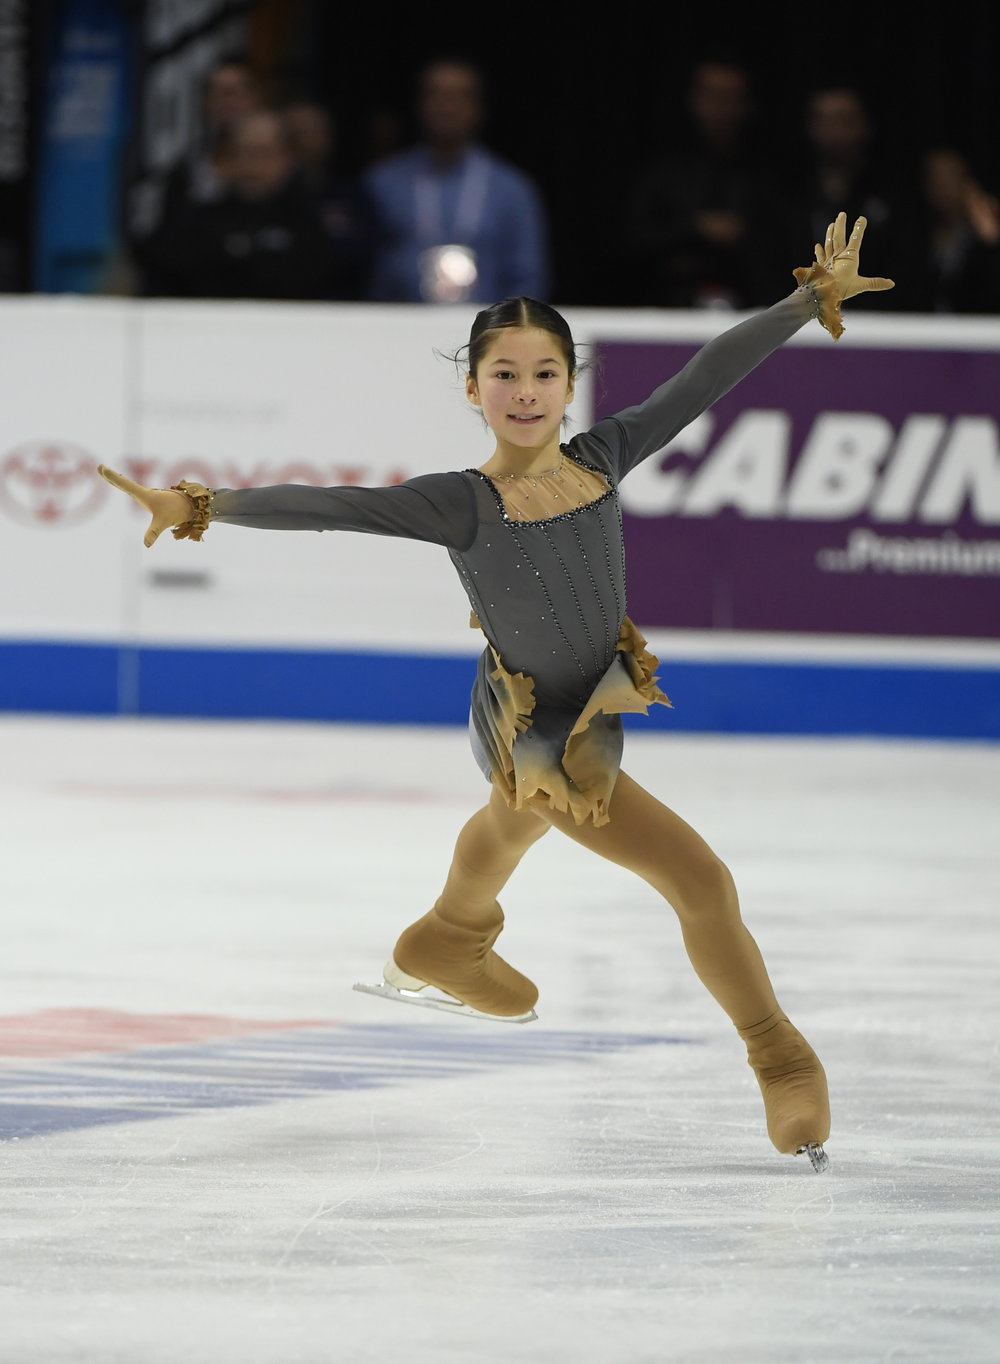 Alysa Liu won the 2018 U.S. junior title at age 12 with seven triple jumps in the free skate.  (Jay Adeff - U.S. Figure Skating)